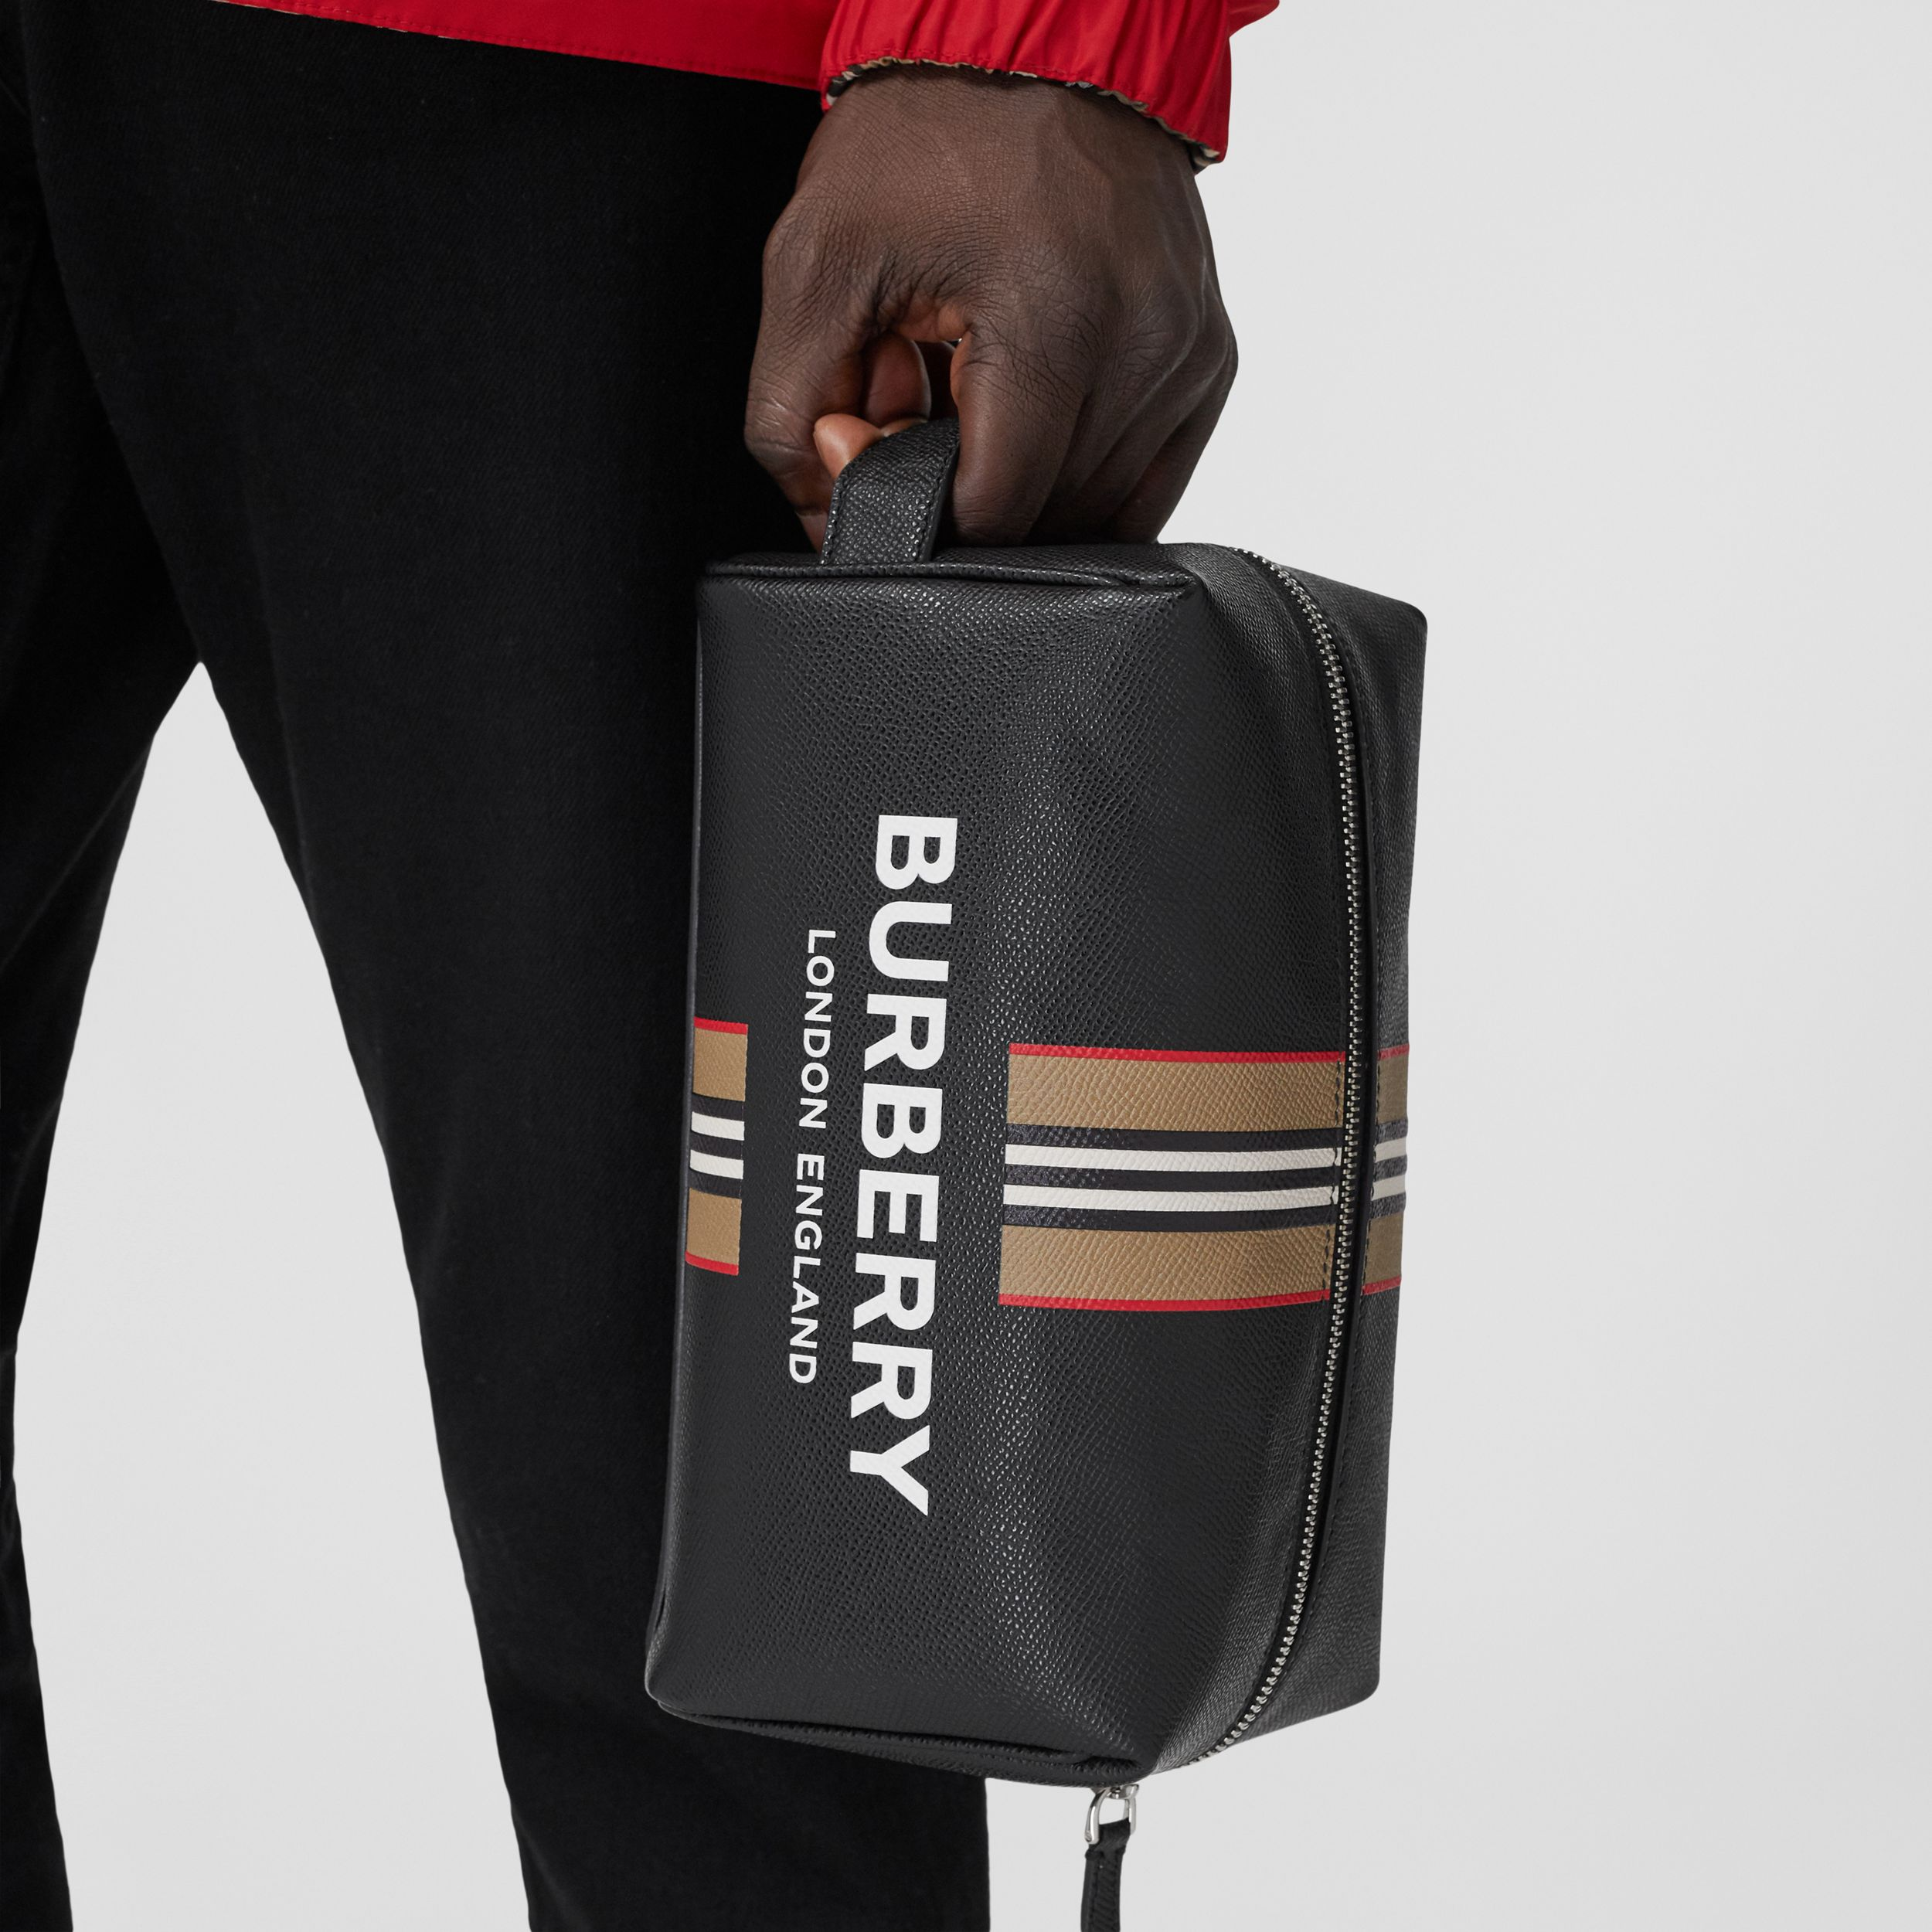 Logo and Icon Stripe Print Leather Travel Pouch in Black - Men | Burberry - 4